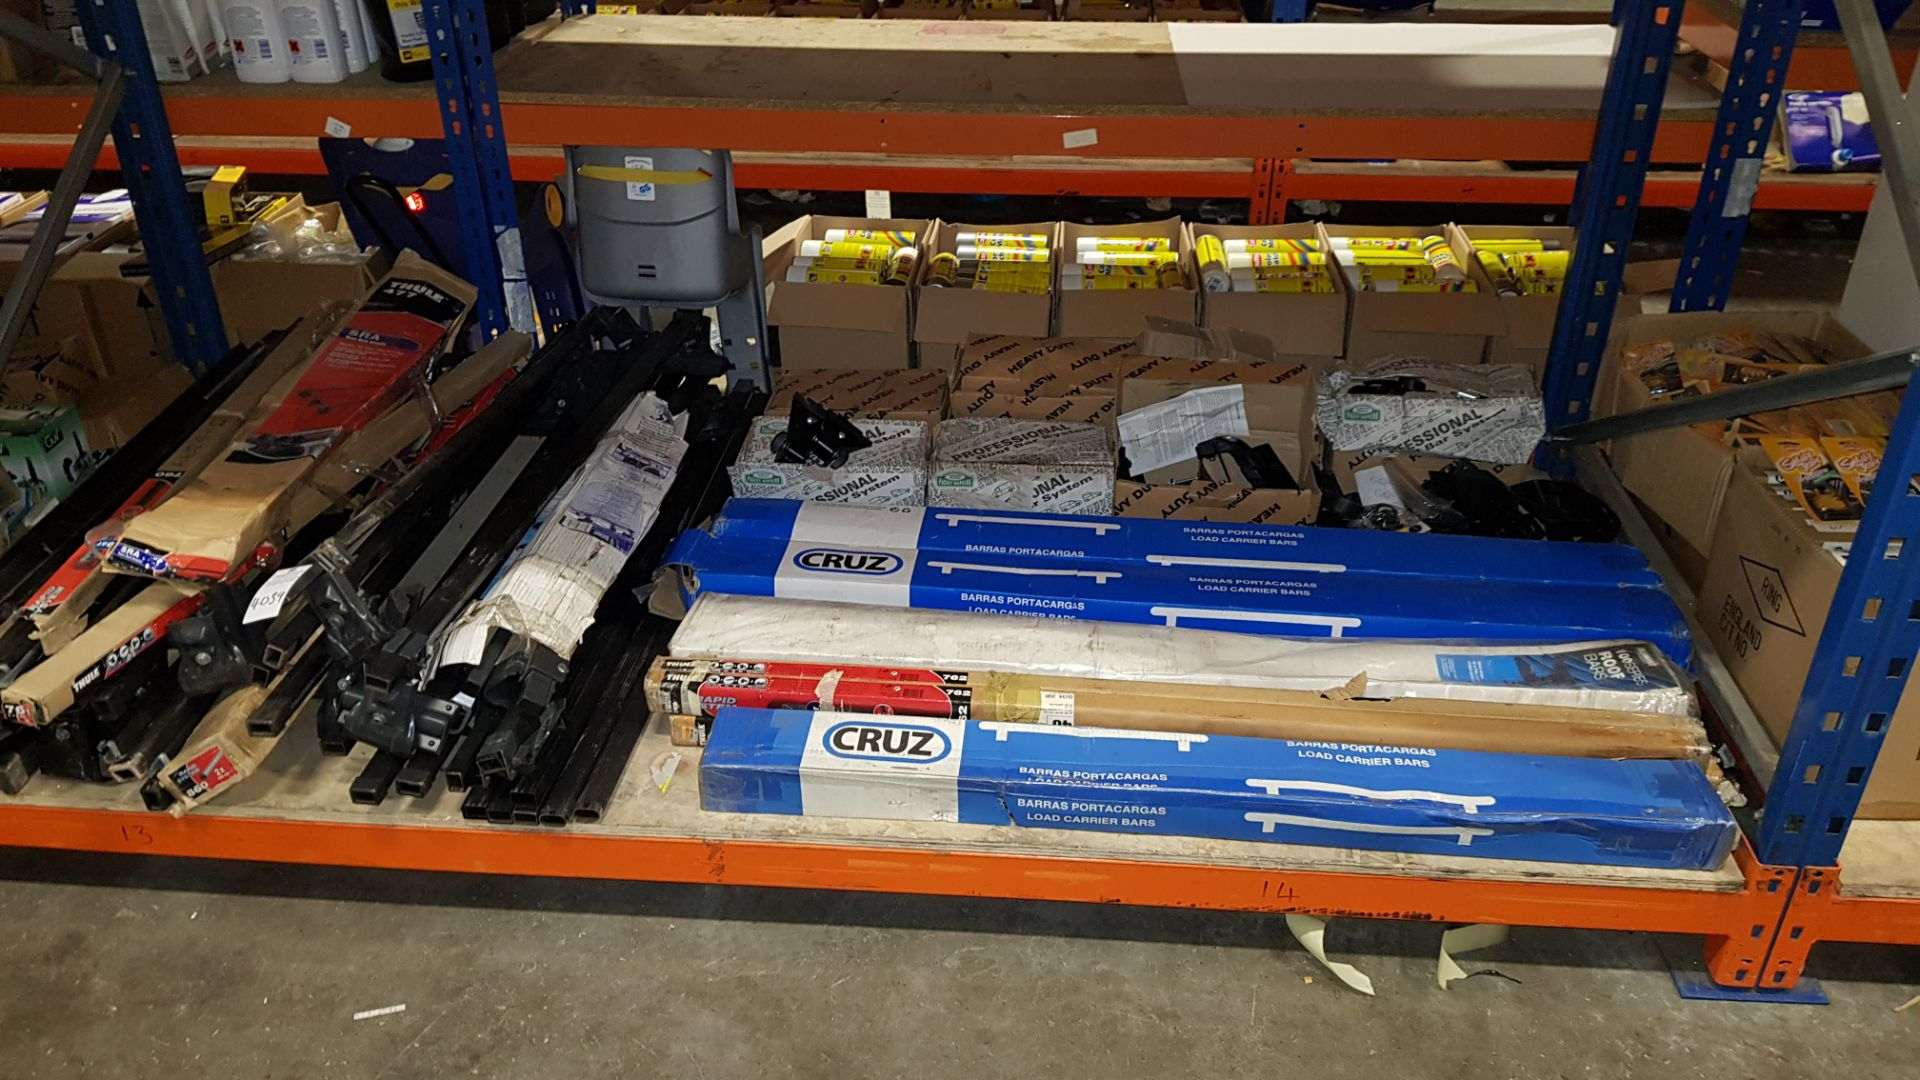 APPROX 30 PIECE ASSORTED LOT CONTAIING VARIOUS BRANDED ROOF BARS (SOME USED) AND ROOF BAR